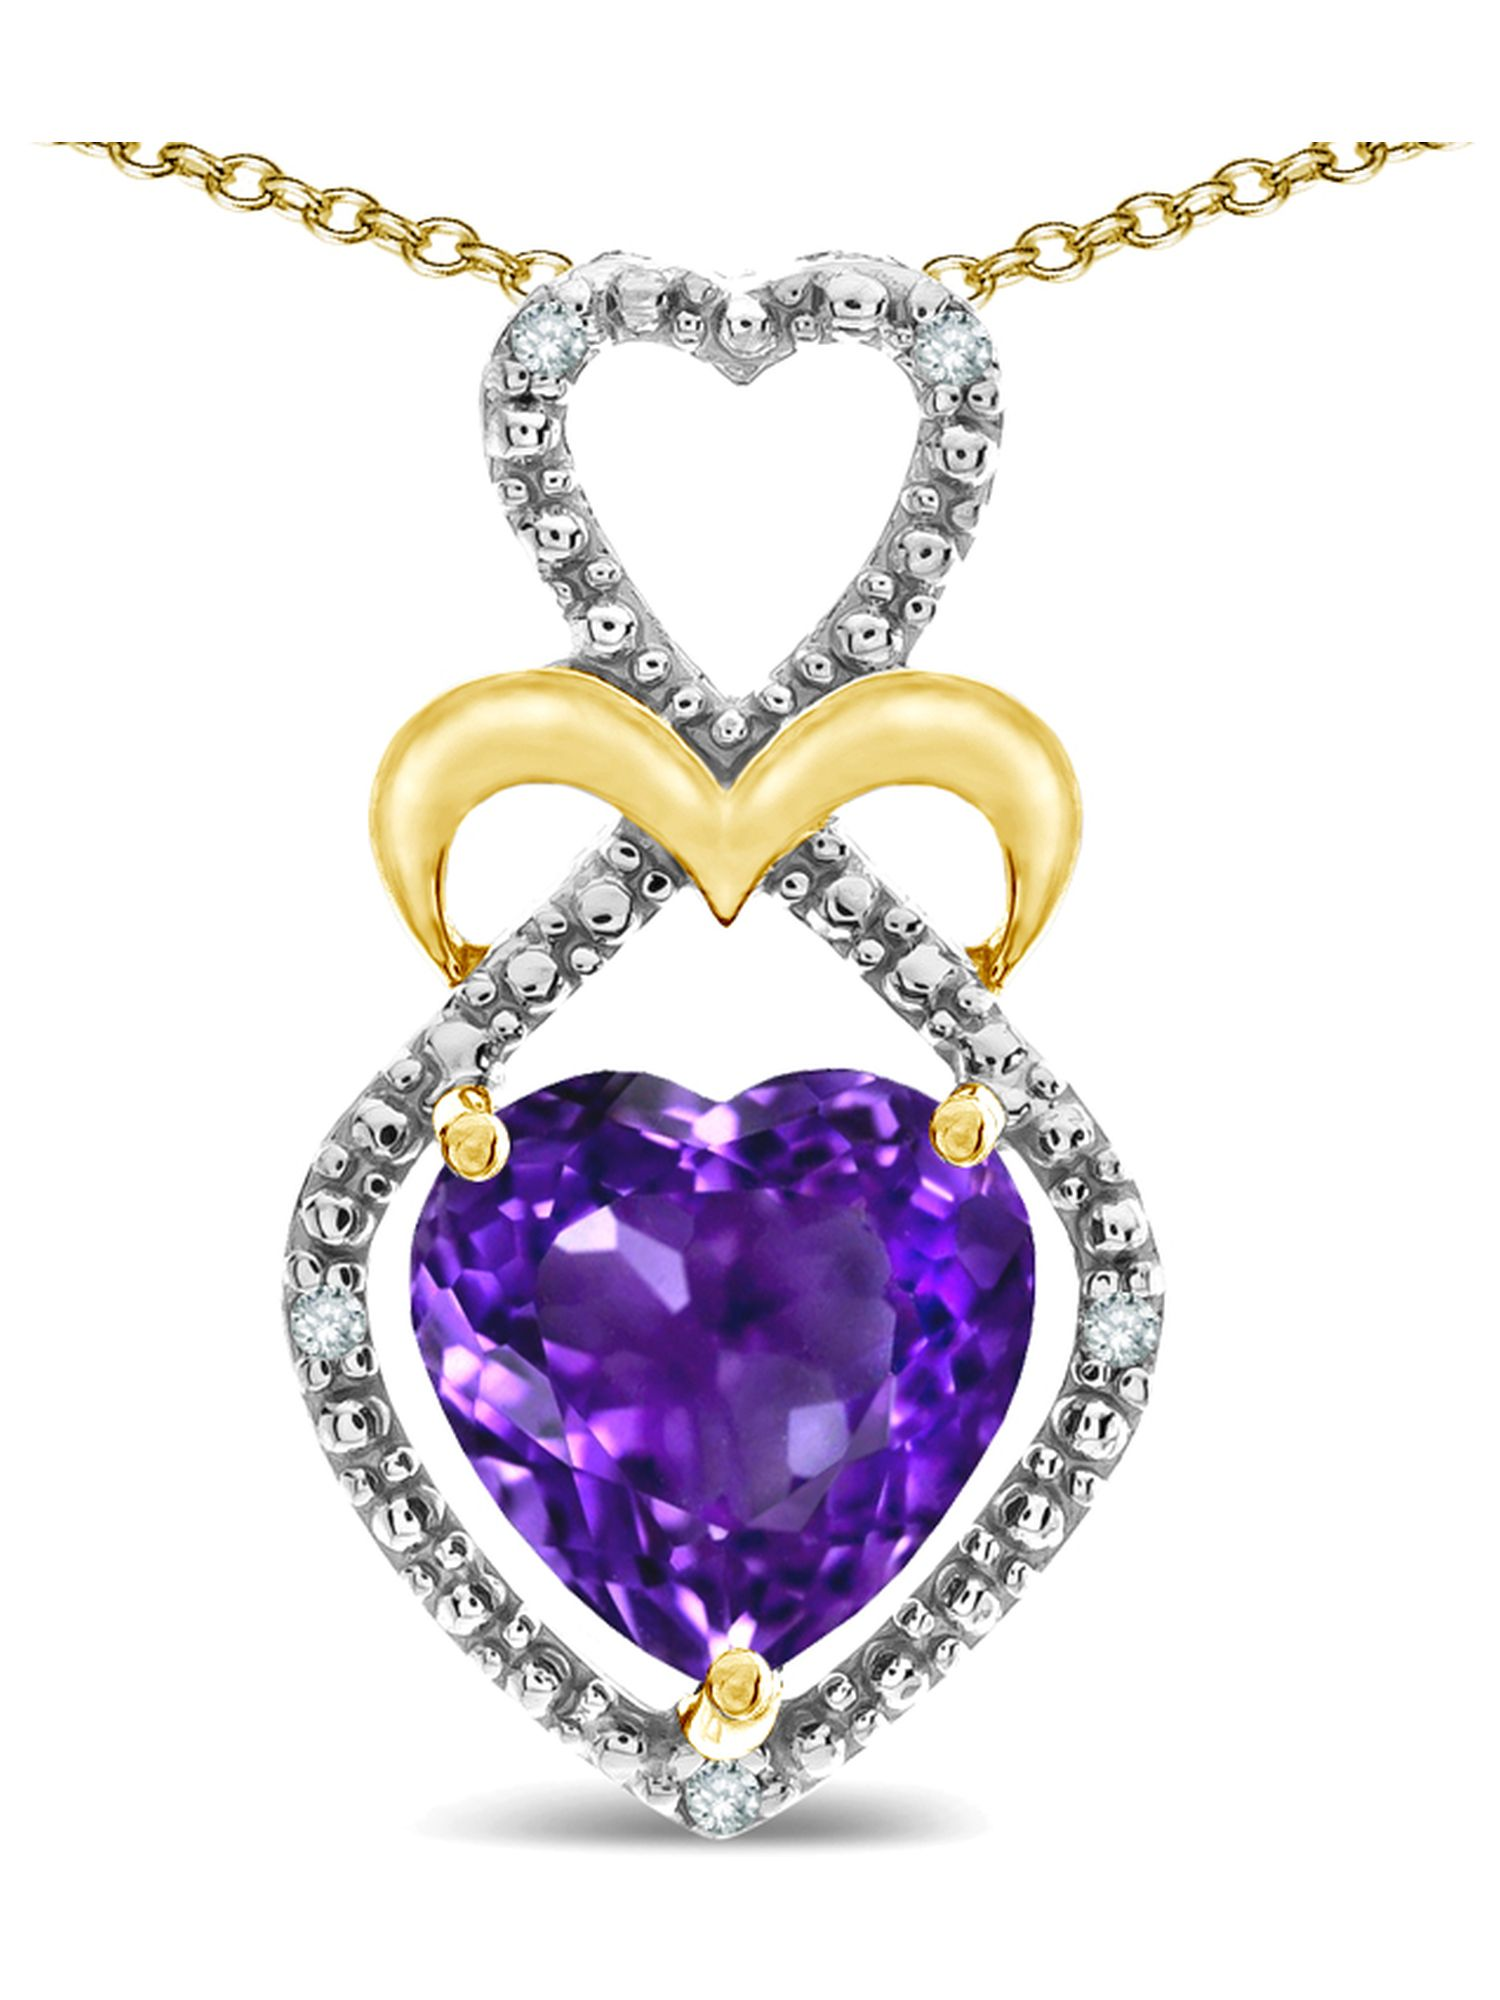 Star K Heart Shape 8mm Genuine Amethyst Heart Halo Embrace Pendant Necklace 14k Yellow Gold with Rhodium Finish